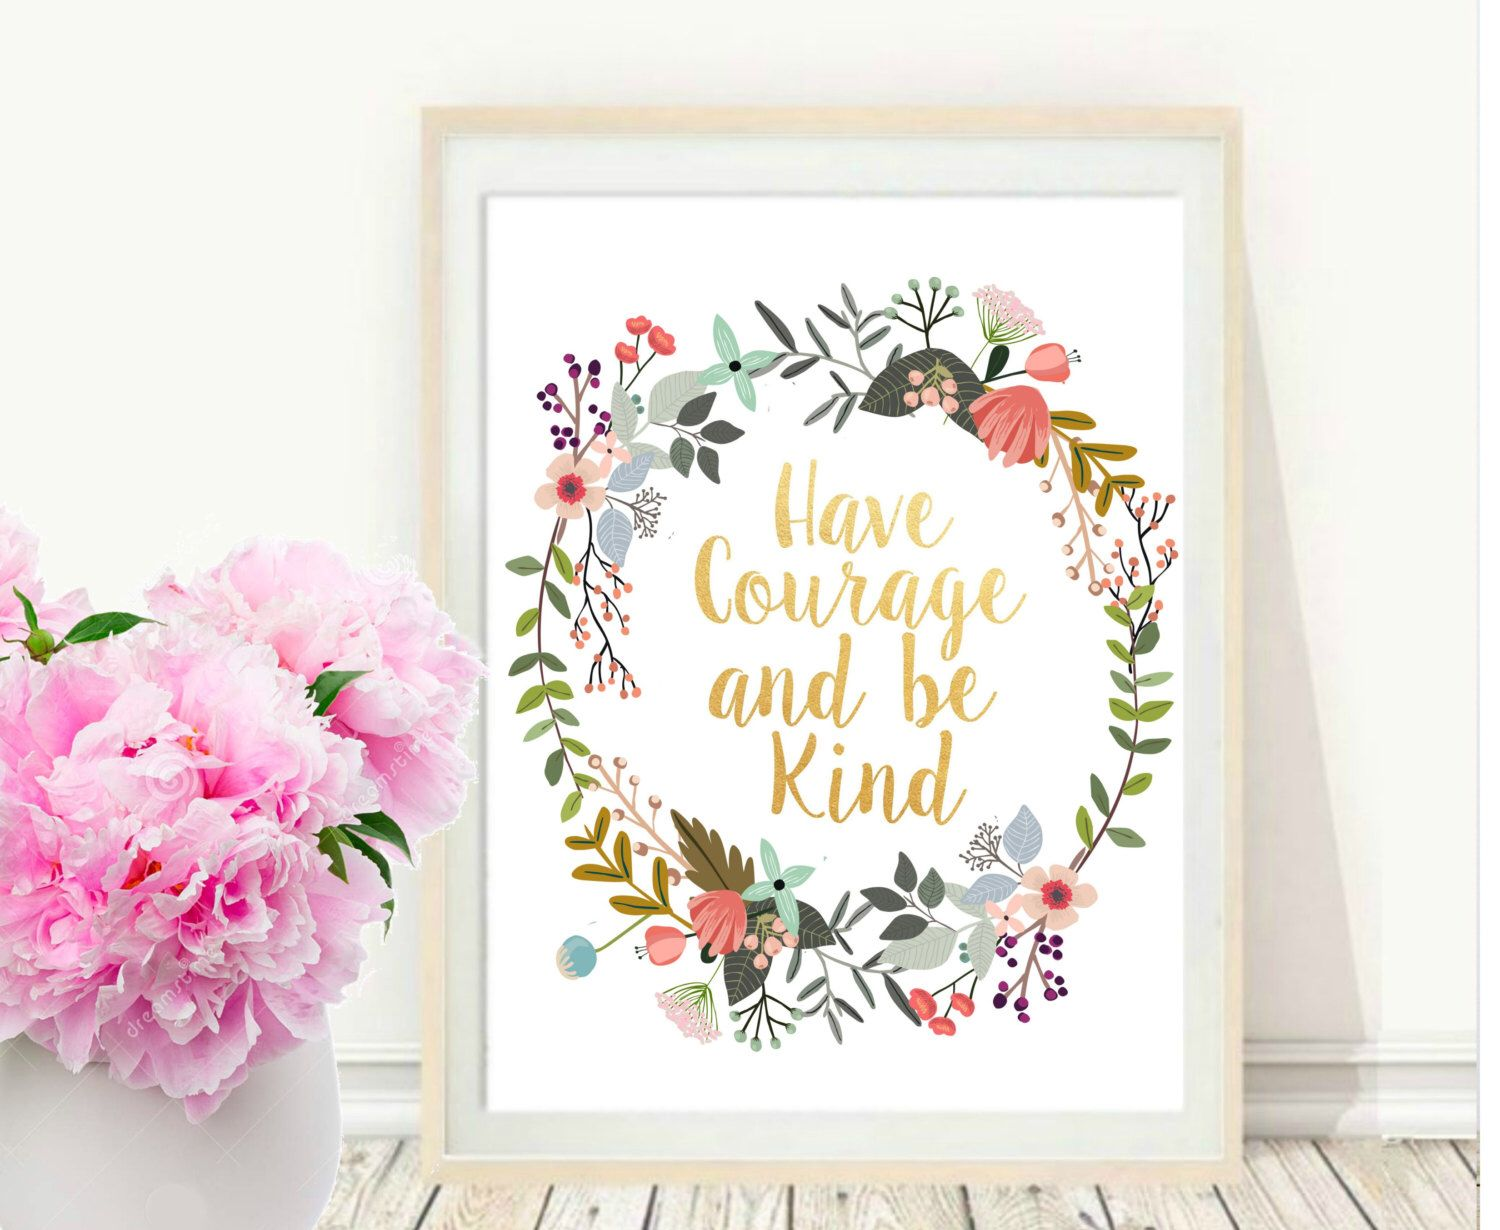 Have Courage And Be Kind, Printable Art, Inspirational Print, Typography Quote, Motivational Poster,  Wall Decor, digital download by PaperStormPrints on Etsy https://www.etsy.com/listing/244263473/have-courage-and-be-kind-printable-art